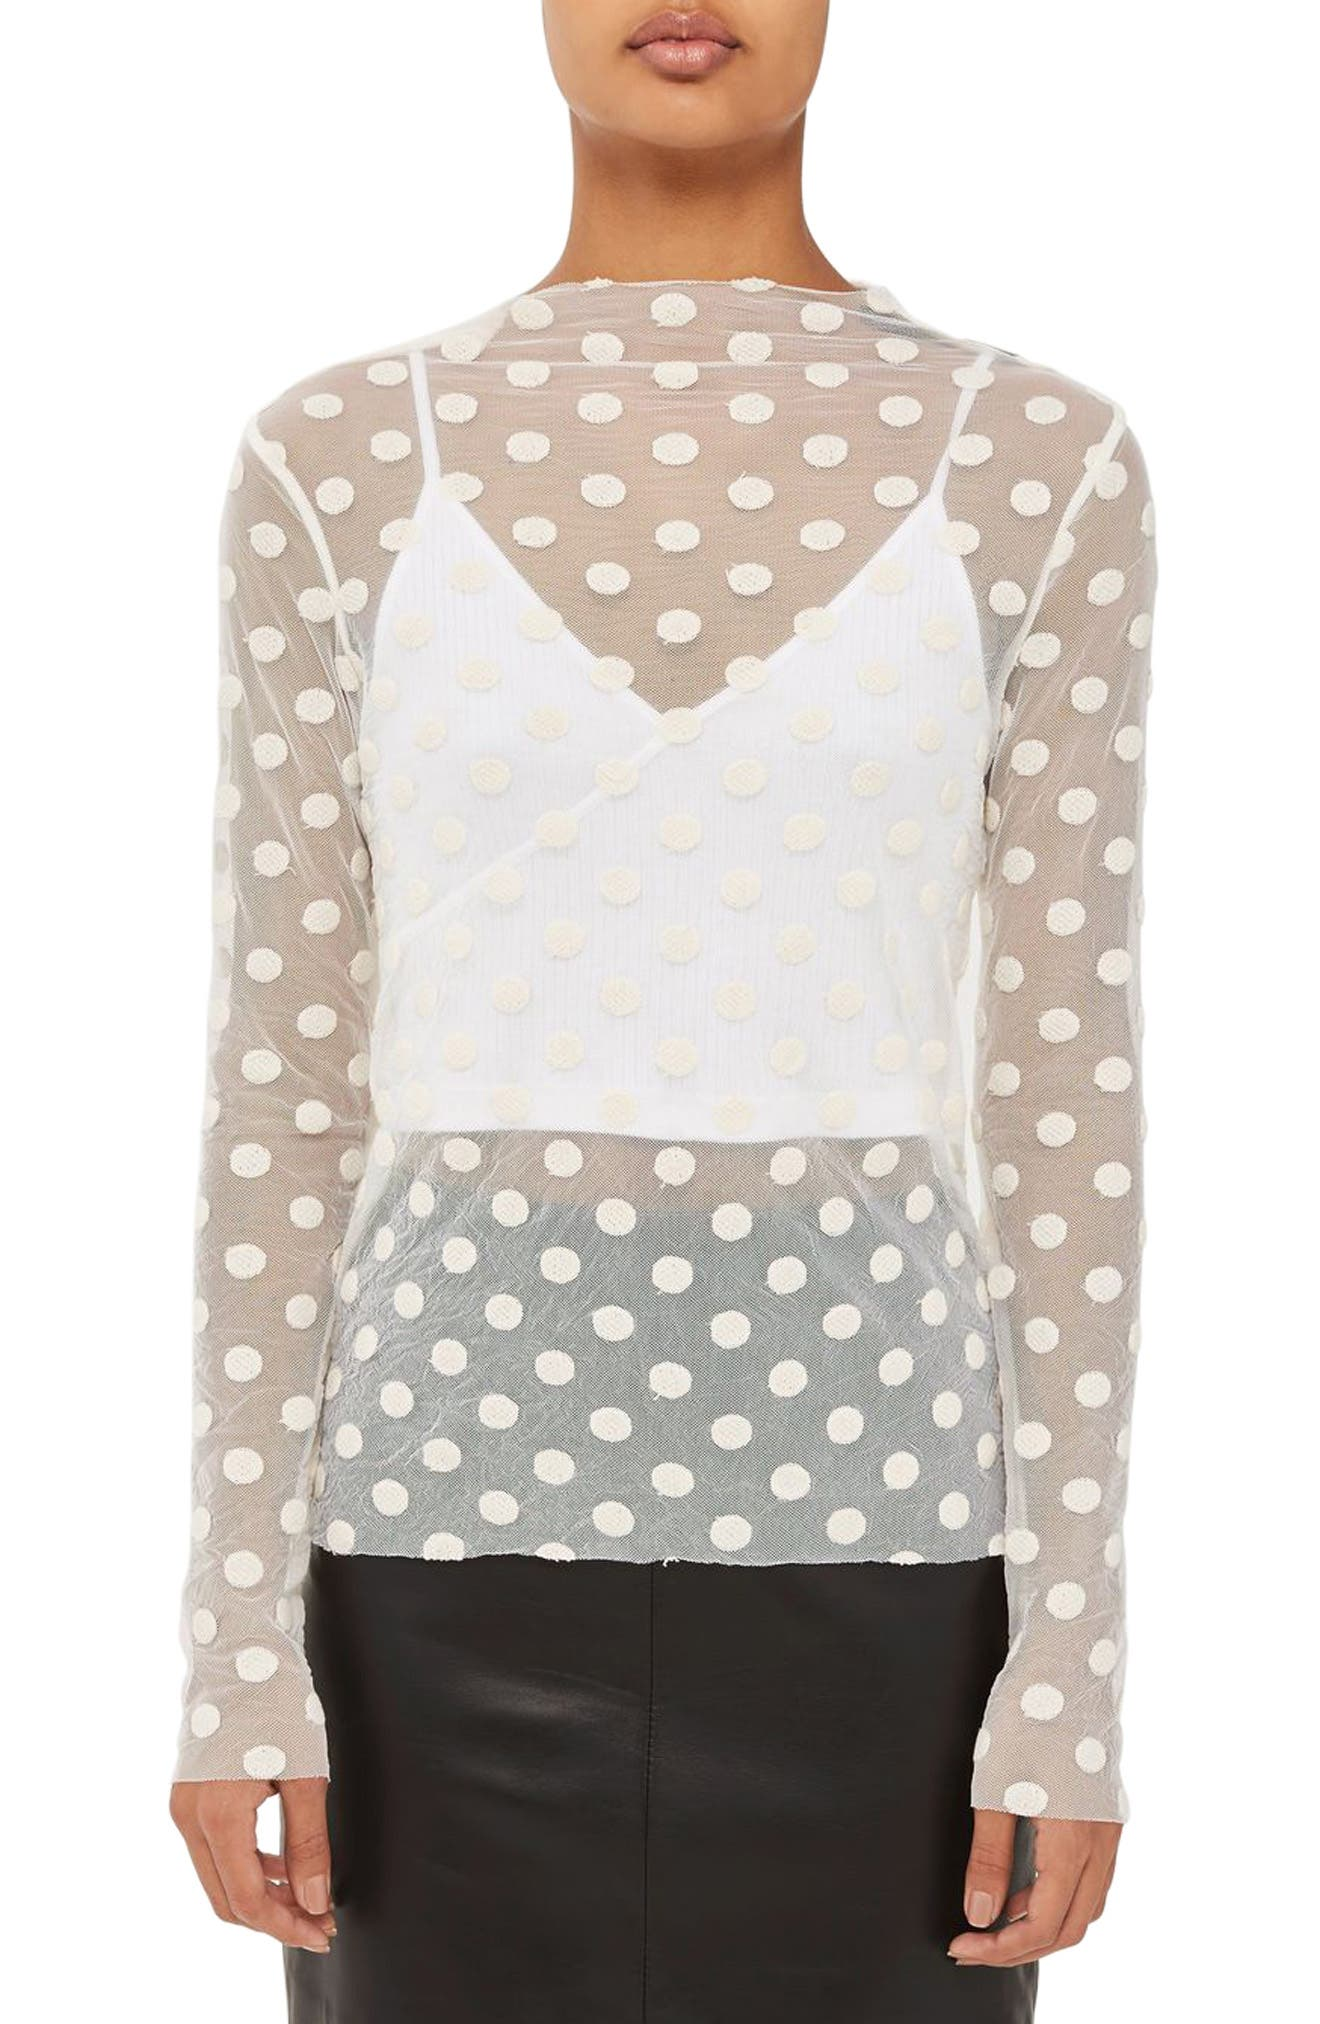 Topshop Boutique Polka Dot Mesh Top